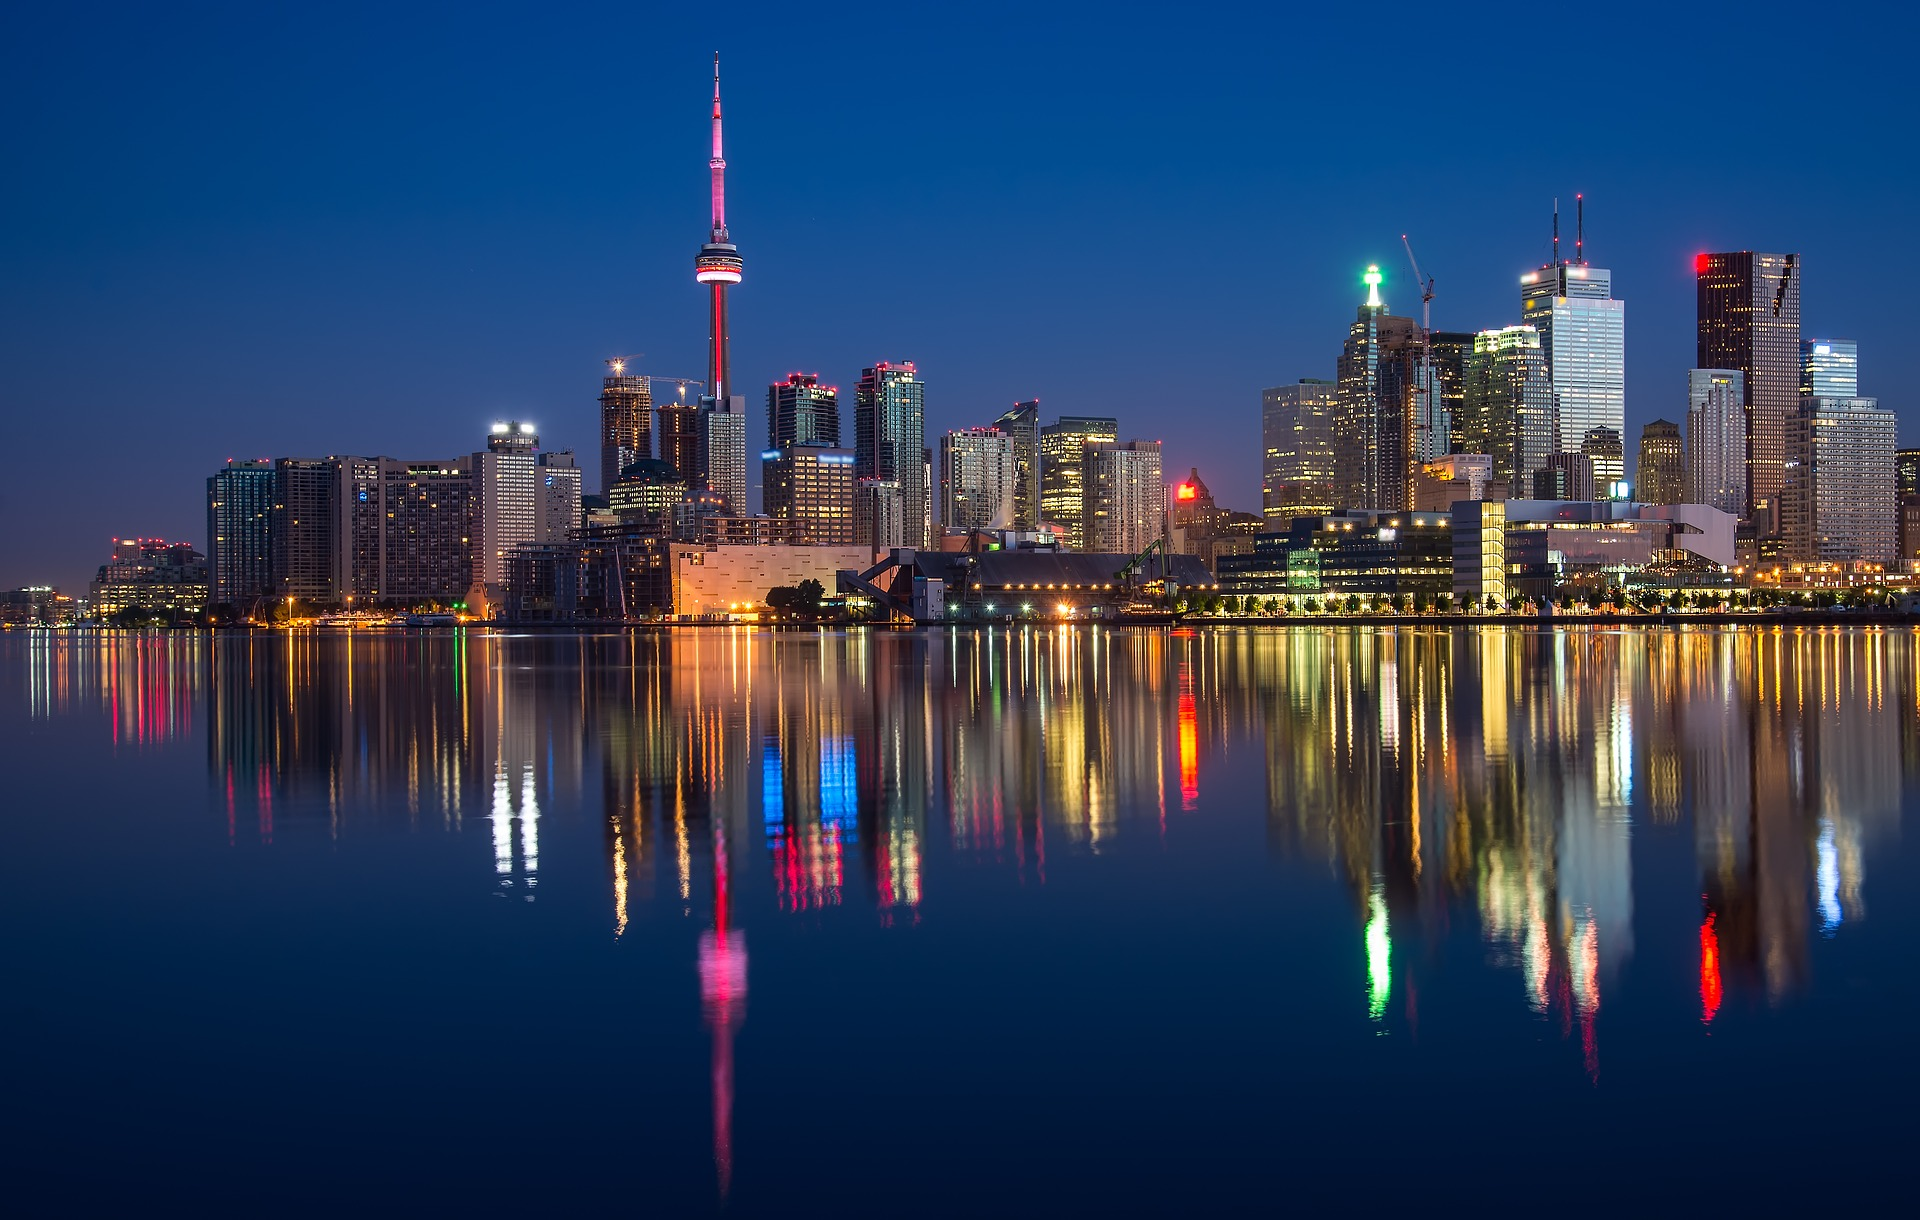 Toronto, Ontario, Canada (Image by James Wheeler).